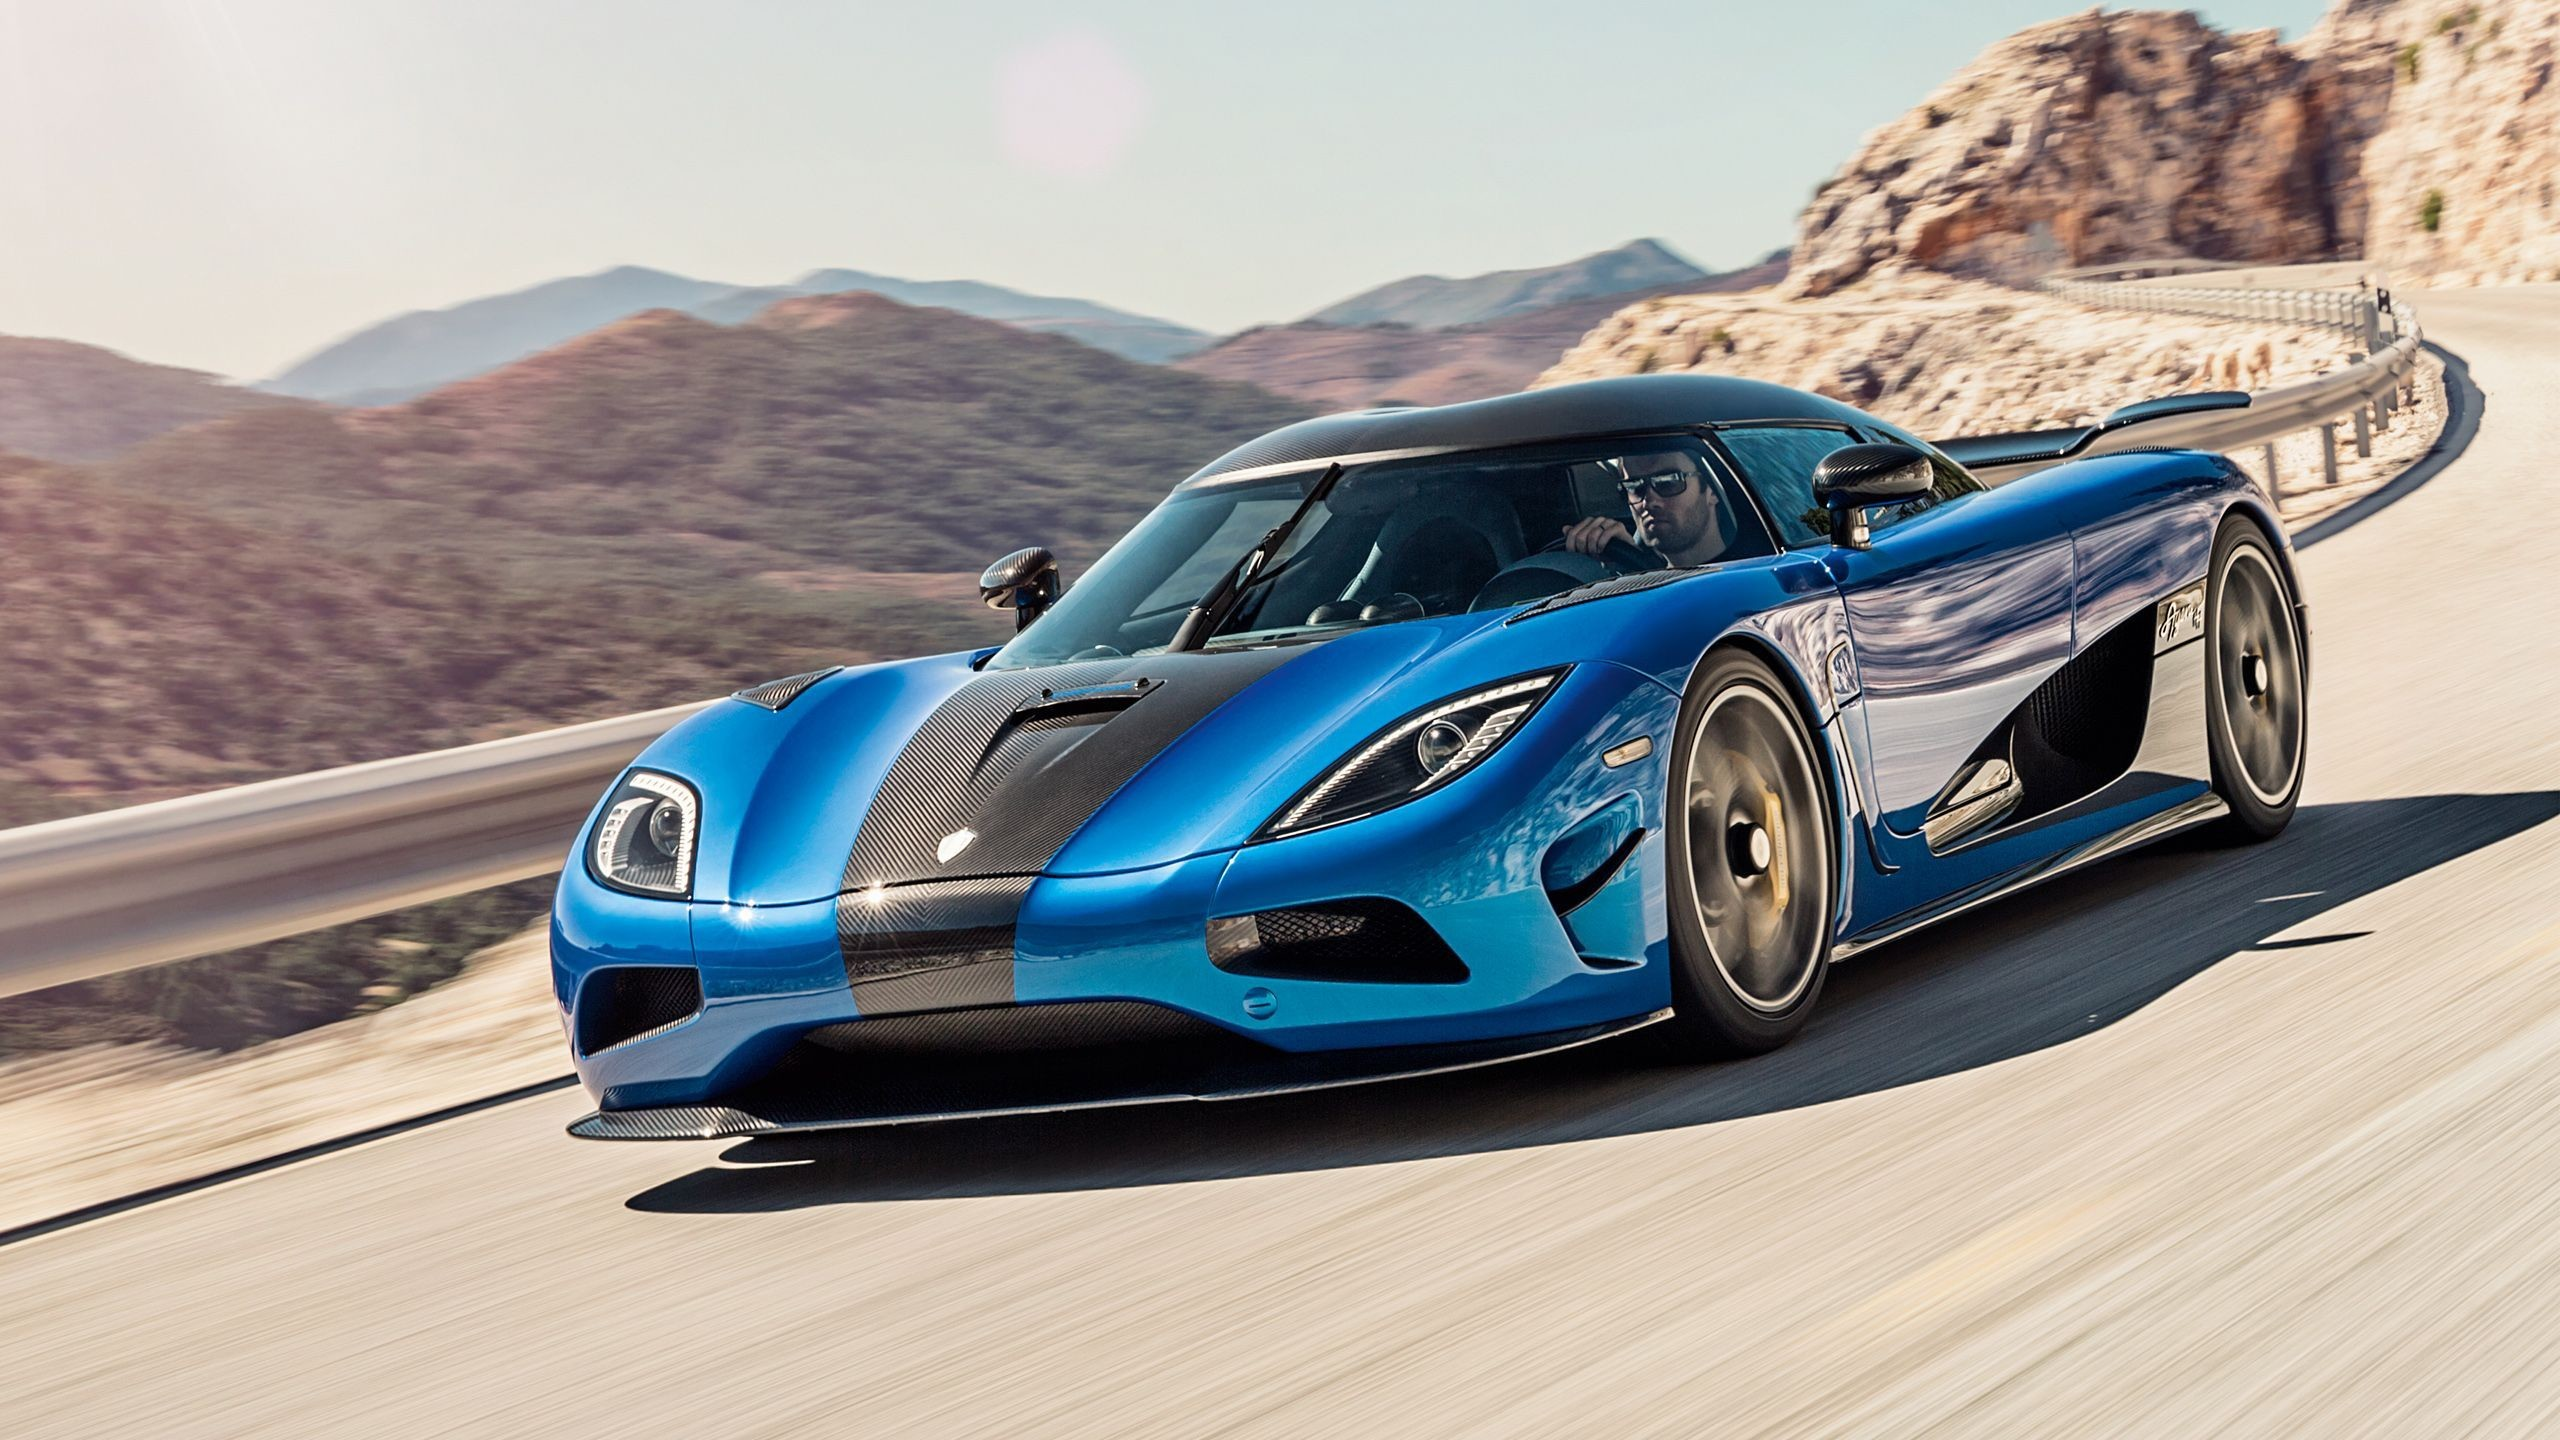 2560x1440 Koenigsegg Car Wallpapers - Page 1 - HD Car Wallpapers